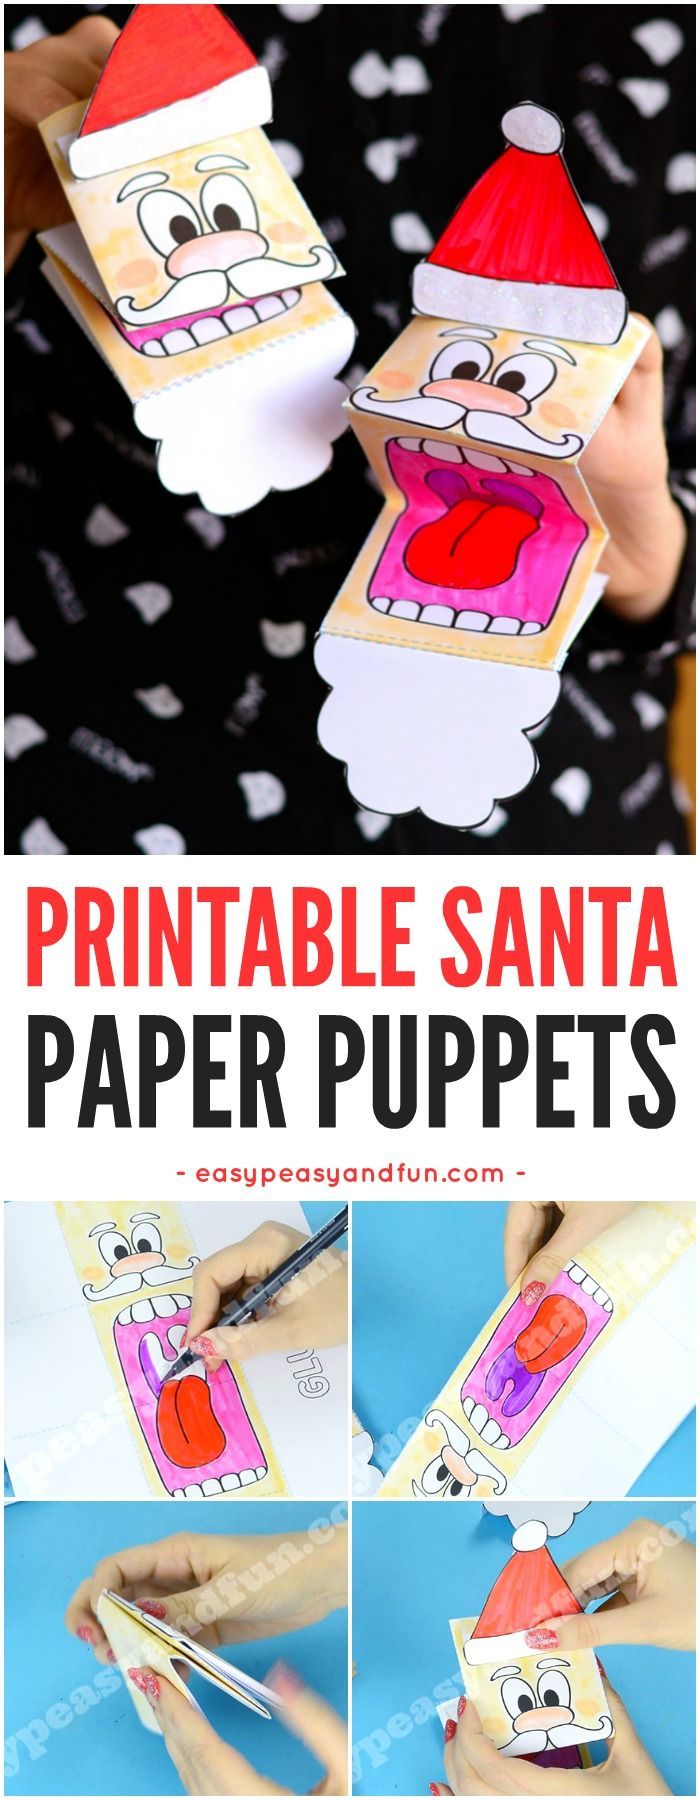 Printable Santa Paper Puppet Template. Fun Christmas craft activity for kids to make.